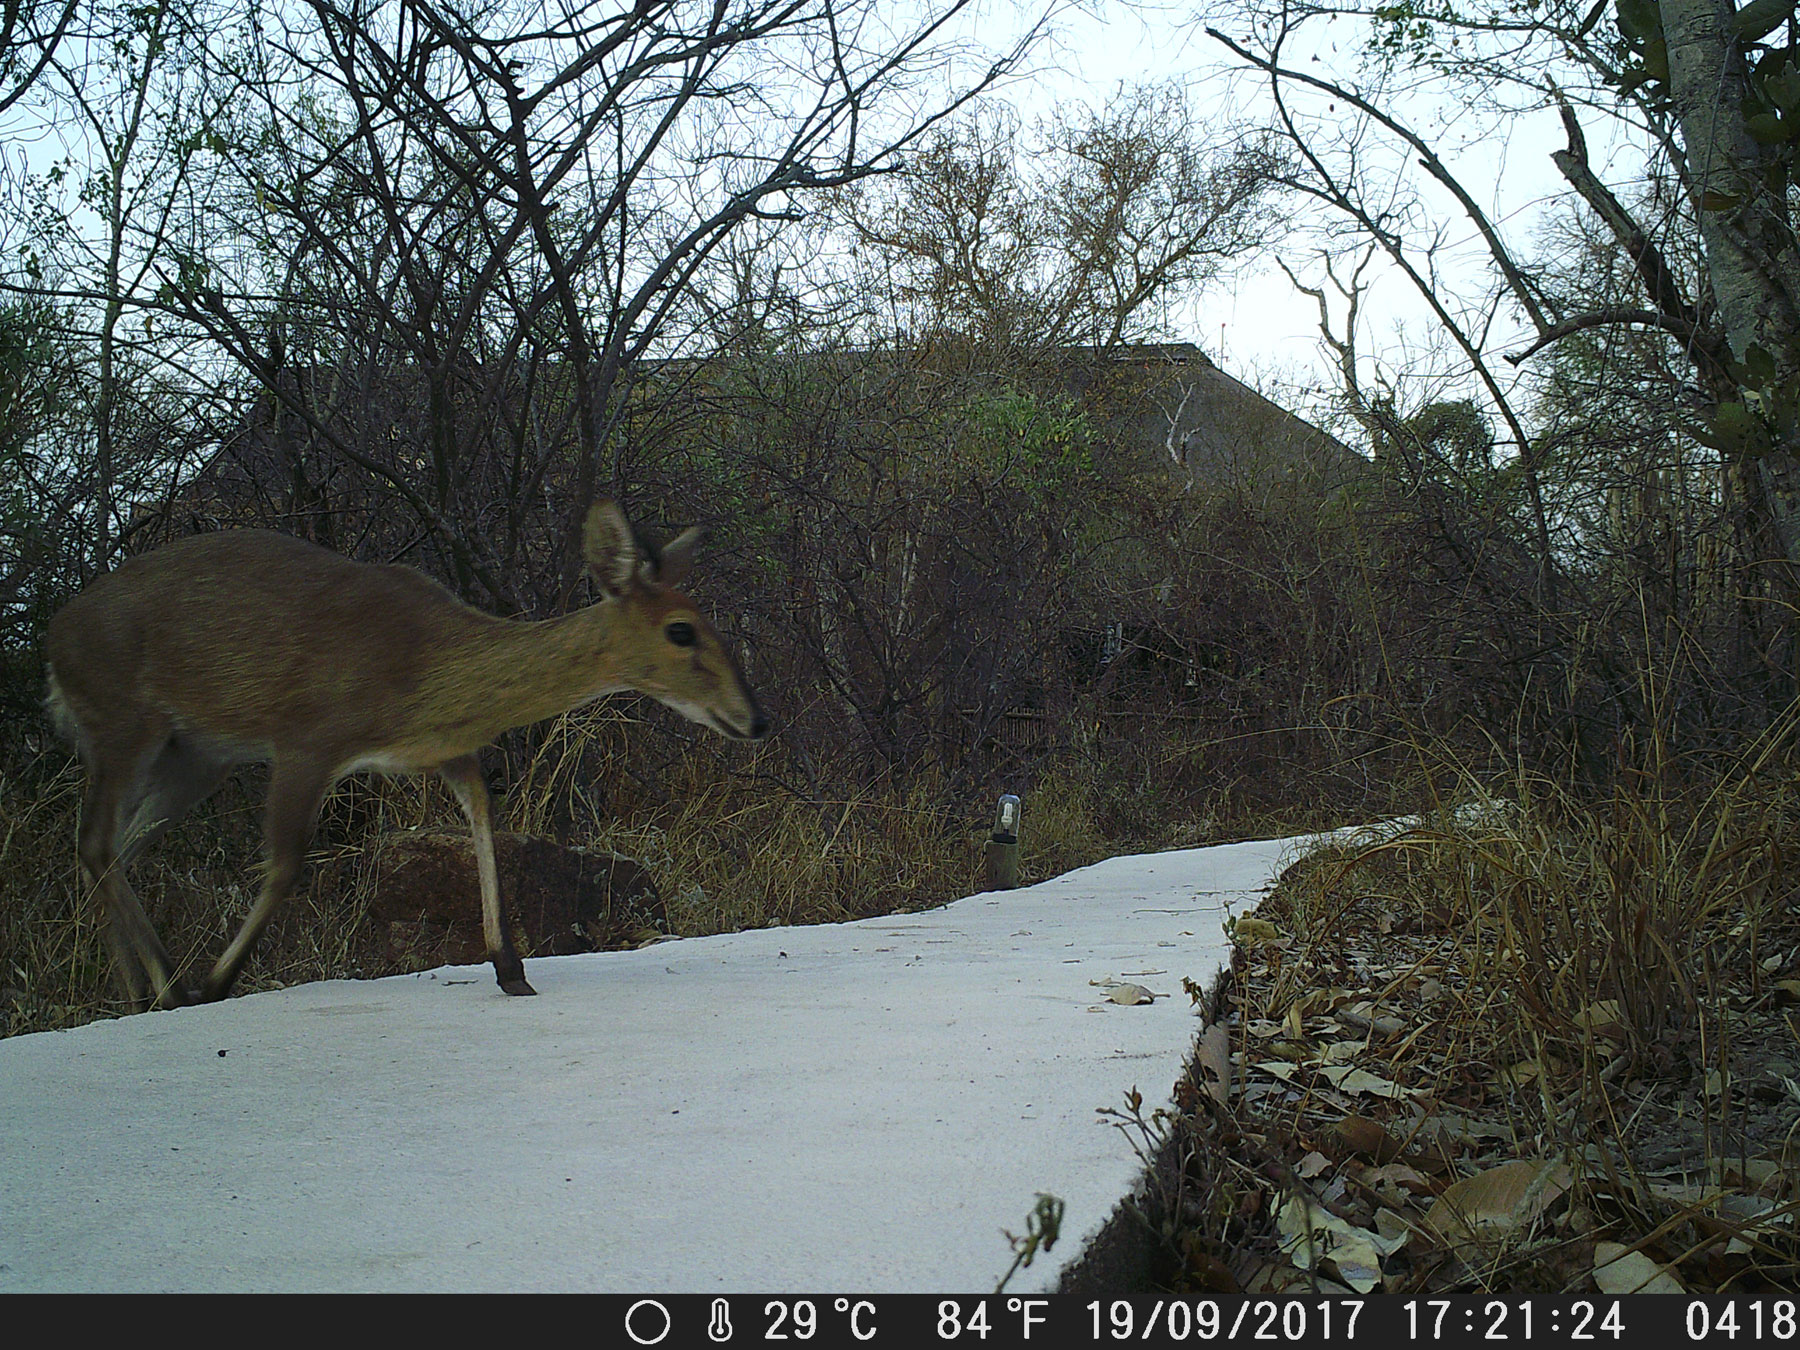 Plains Game at Ezulwini Camera Trap